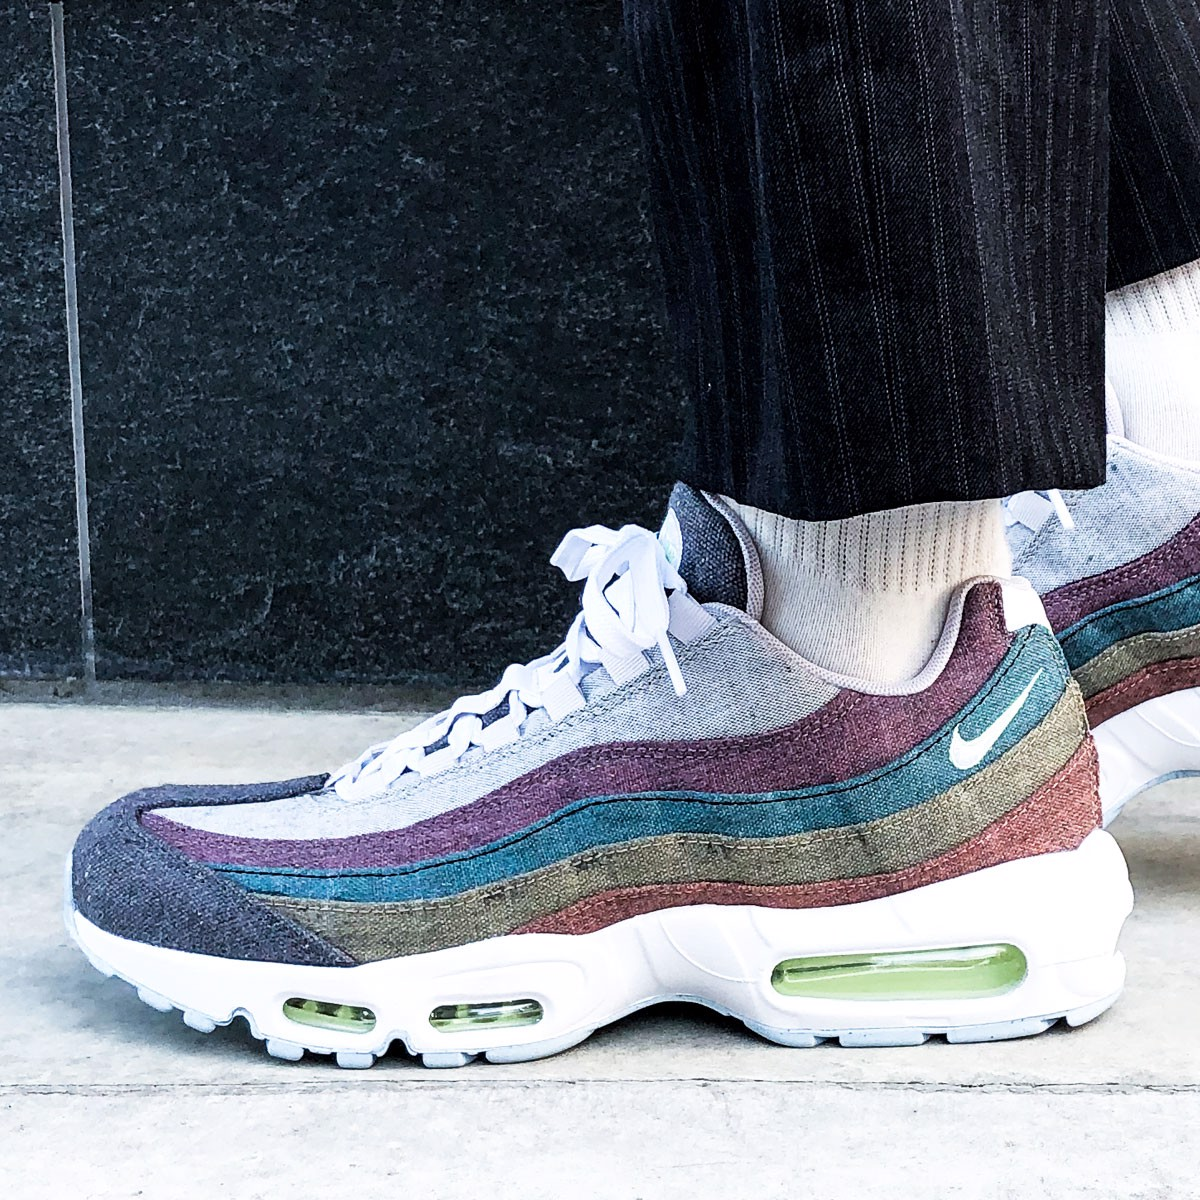 Giày Nike Air Max 95 Recycled Canvas Pack CK6478-001